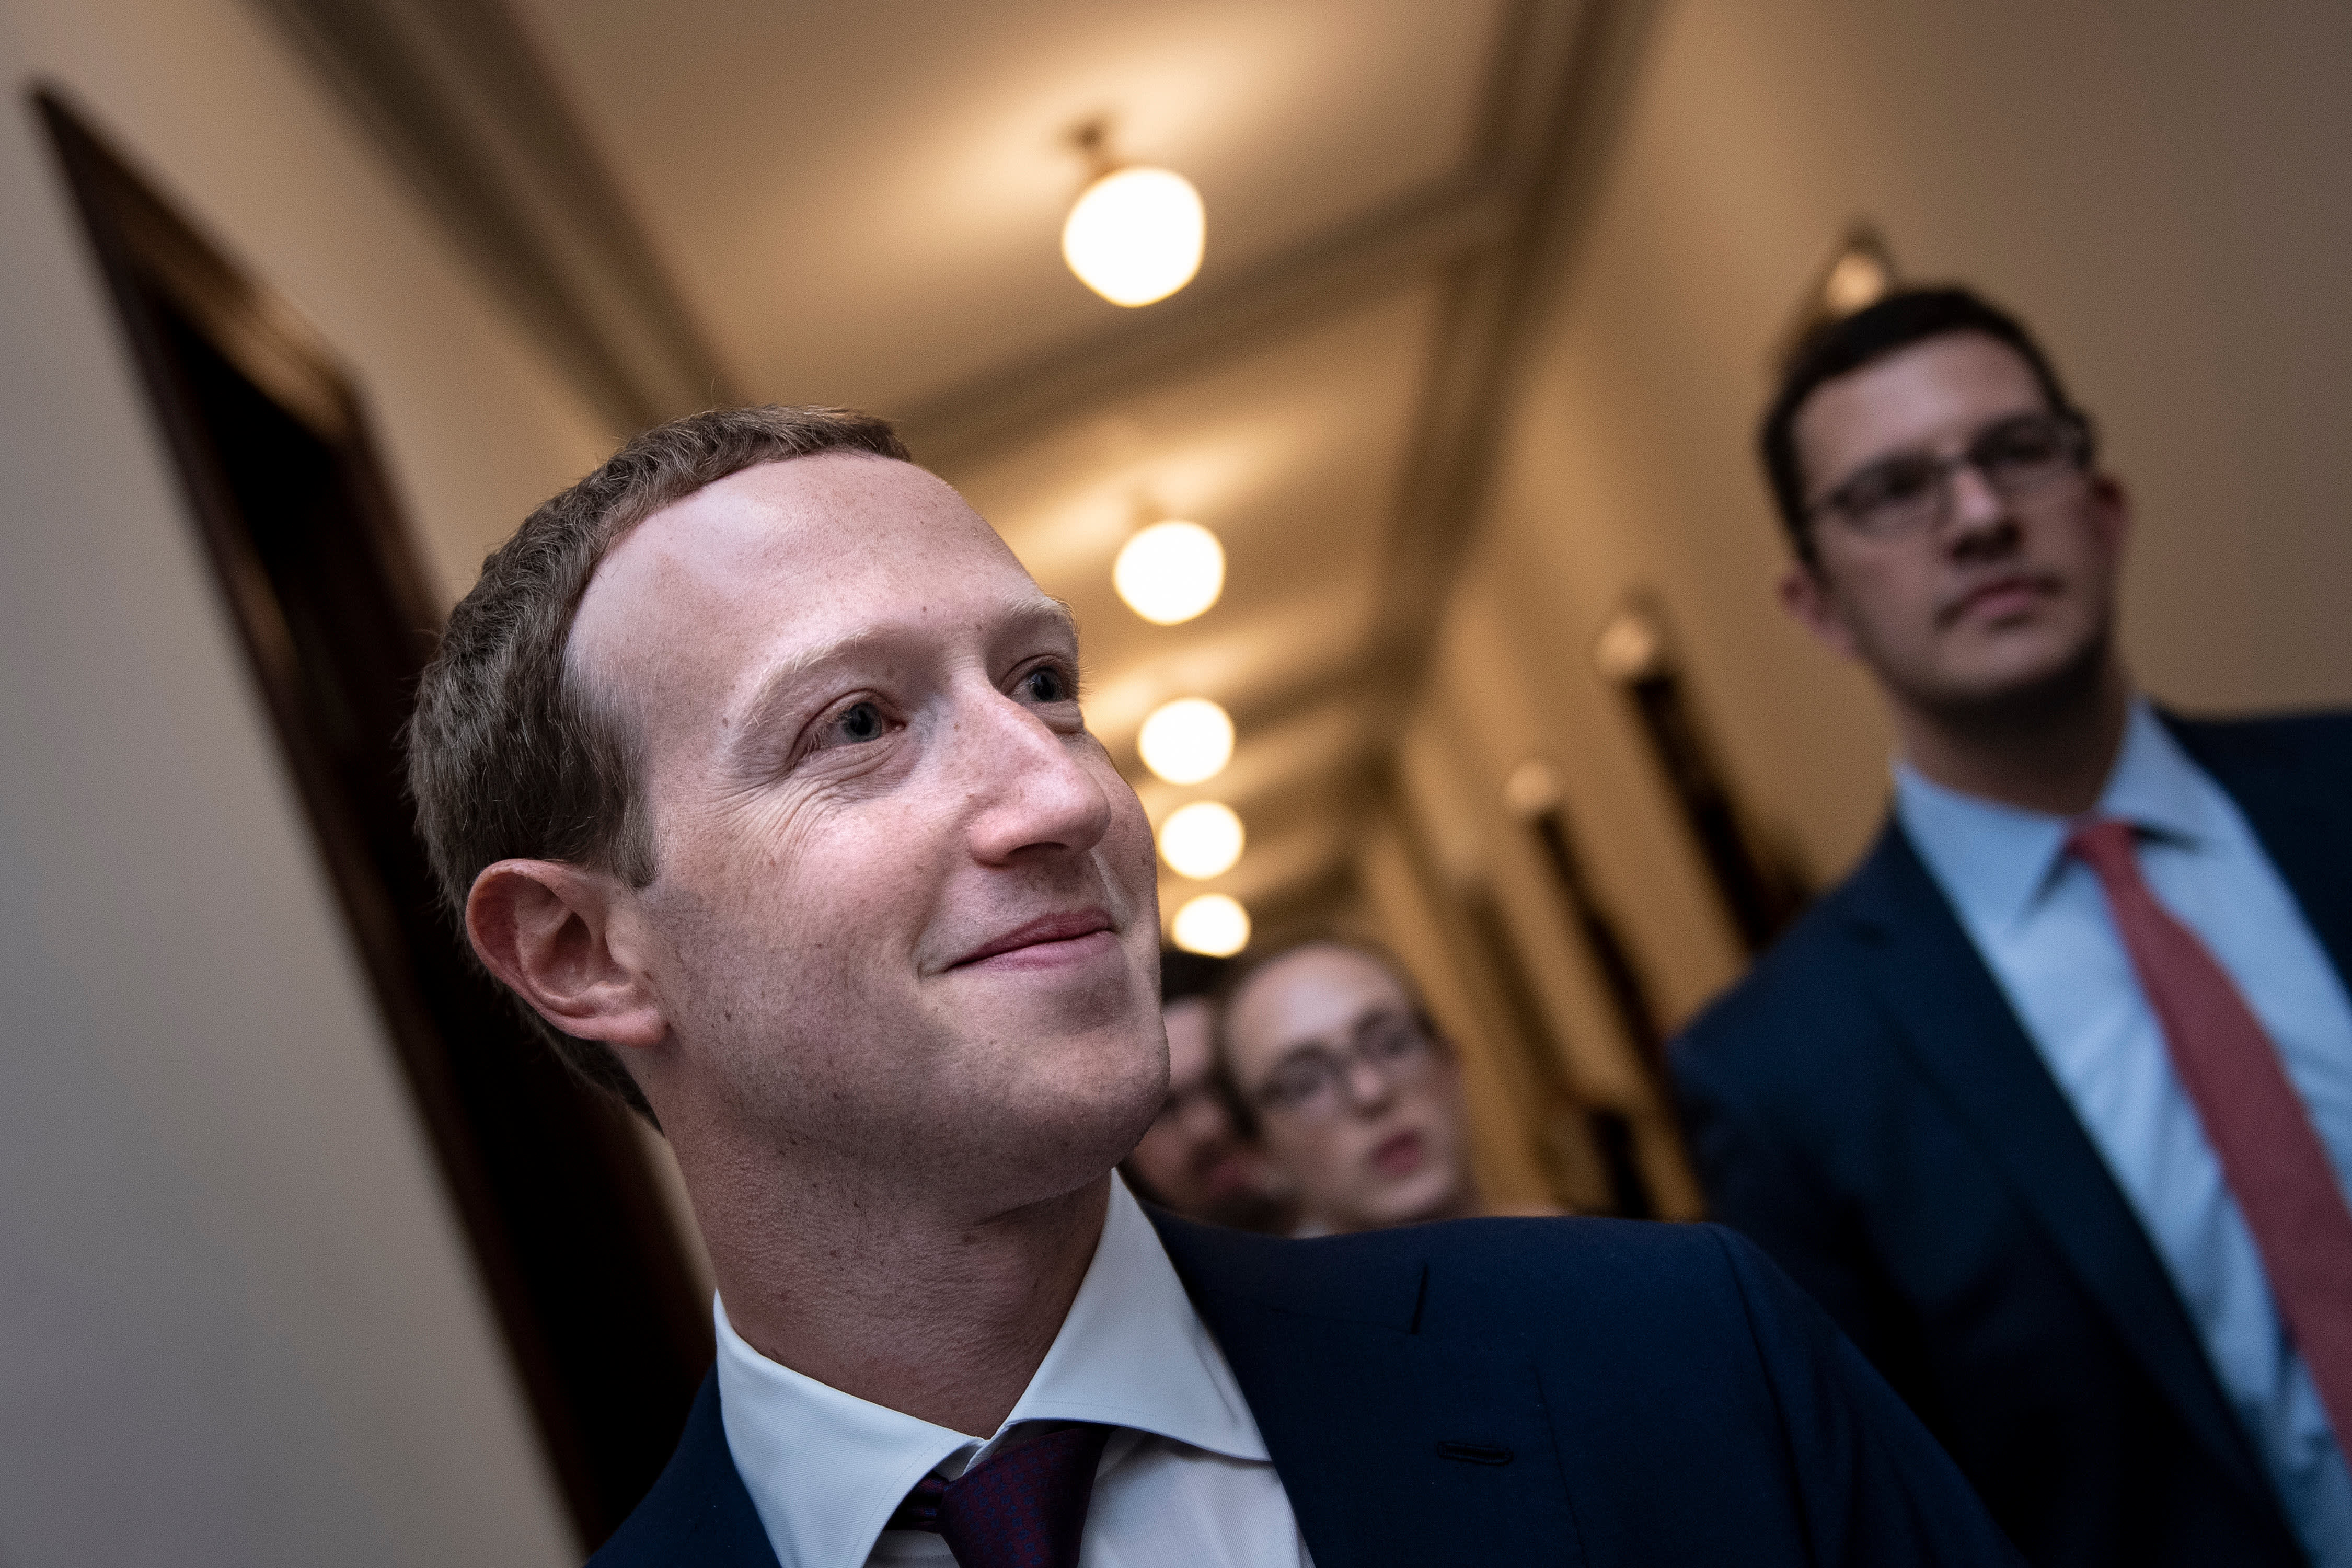 Zuckerberg: I thought about banning political ads from Facebook, but decided not to